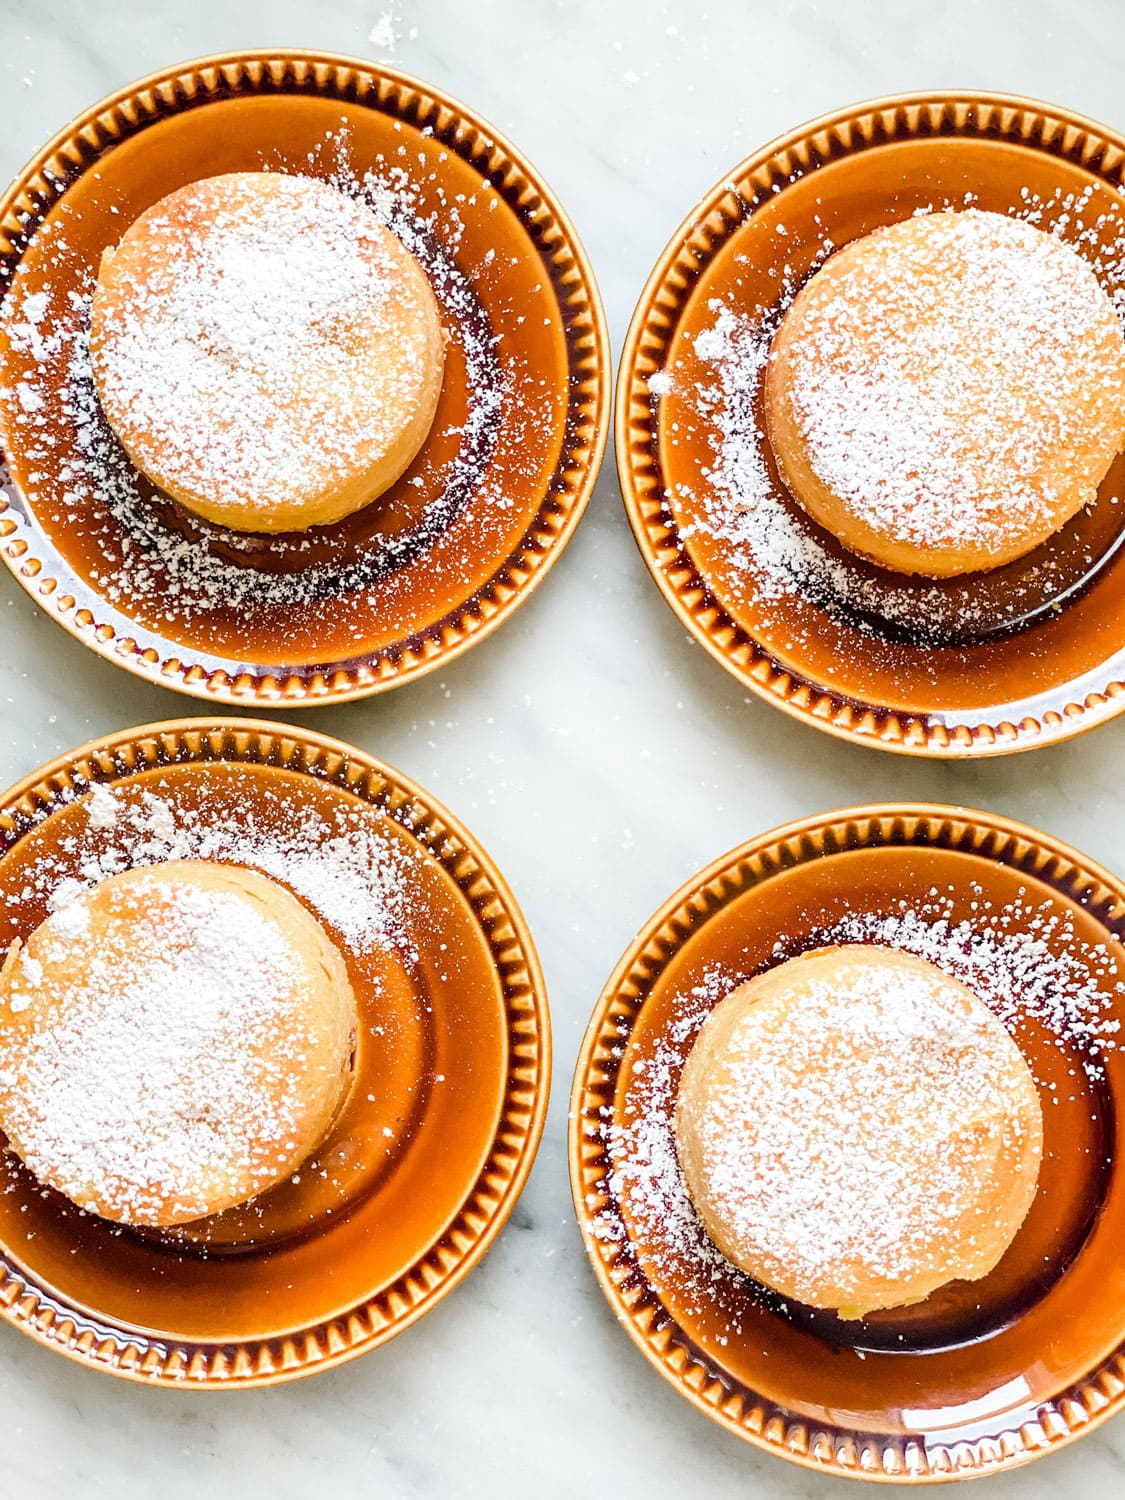 4 cakes dusted with powdered sugar on small gold plates